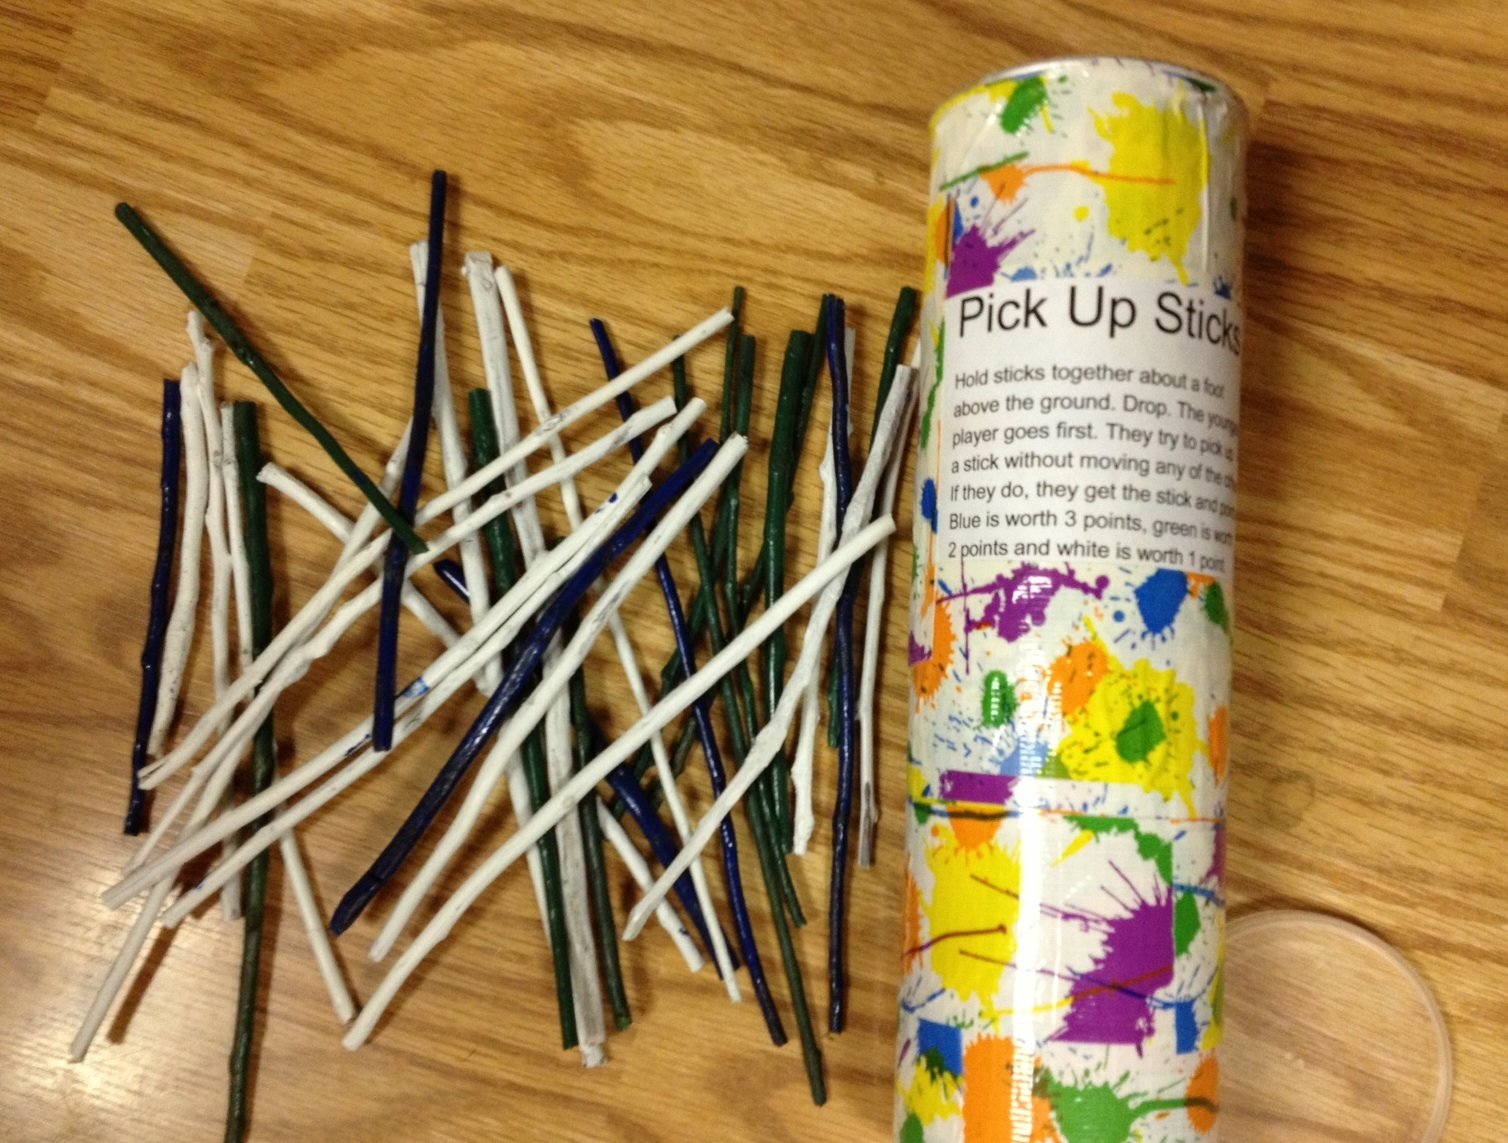 Make your own Pick Up Sticks game.